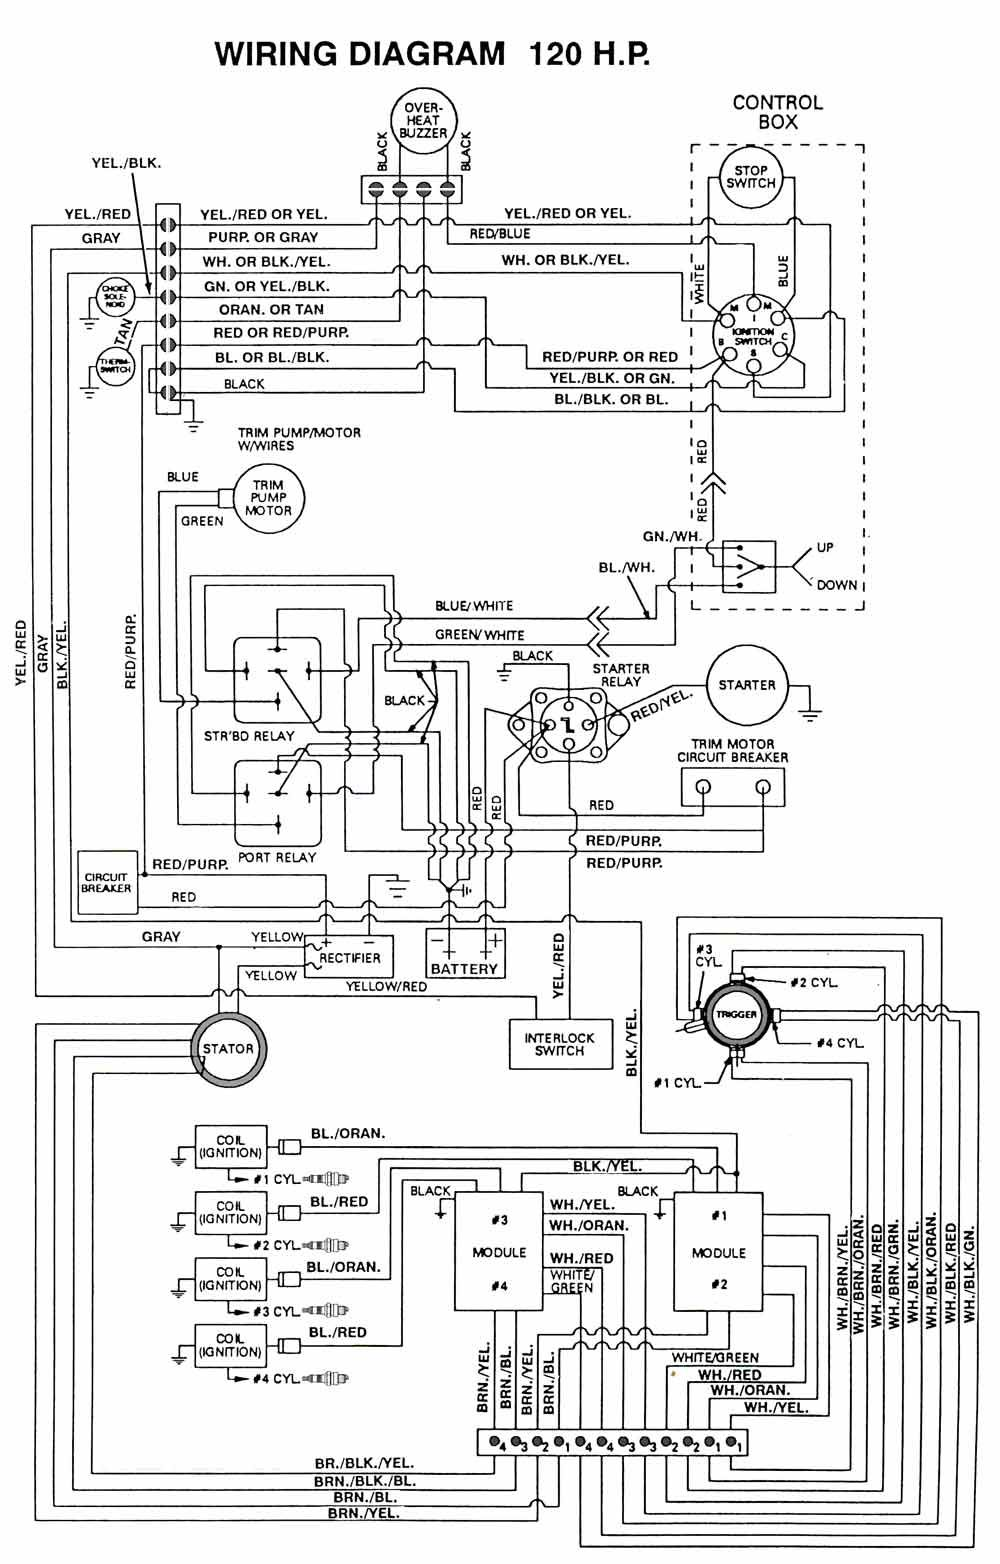 hight resolution of image result for wiring diagram for 1990 mercury force 120 hp ignition 4 cyl force wiring mercury marine ignition 4 cyl force wiring